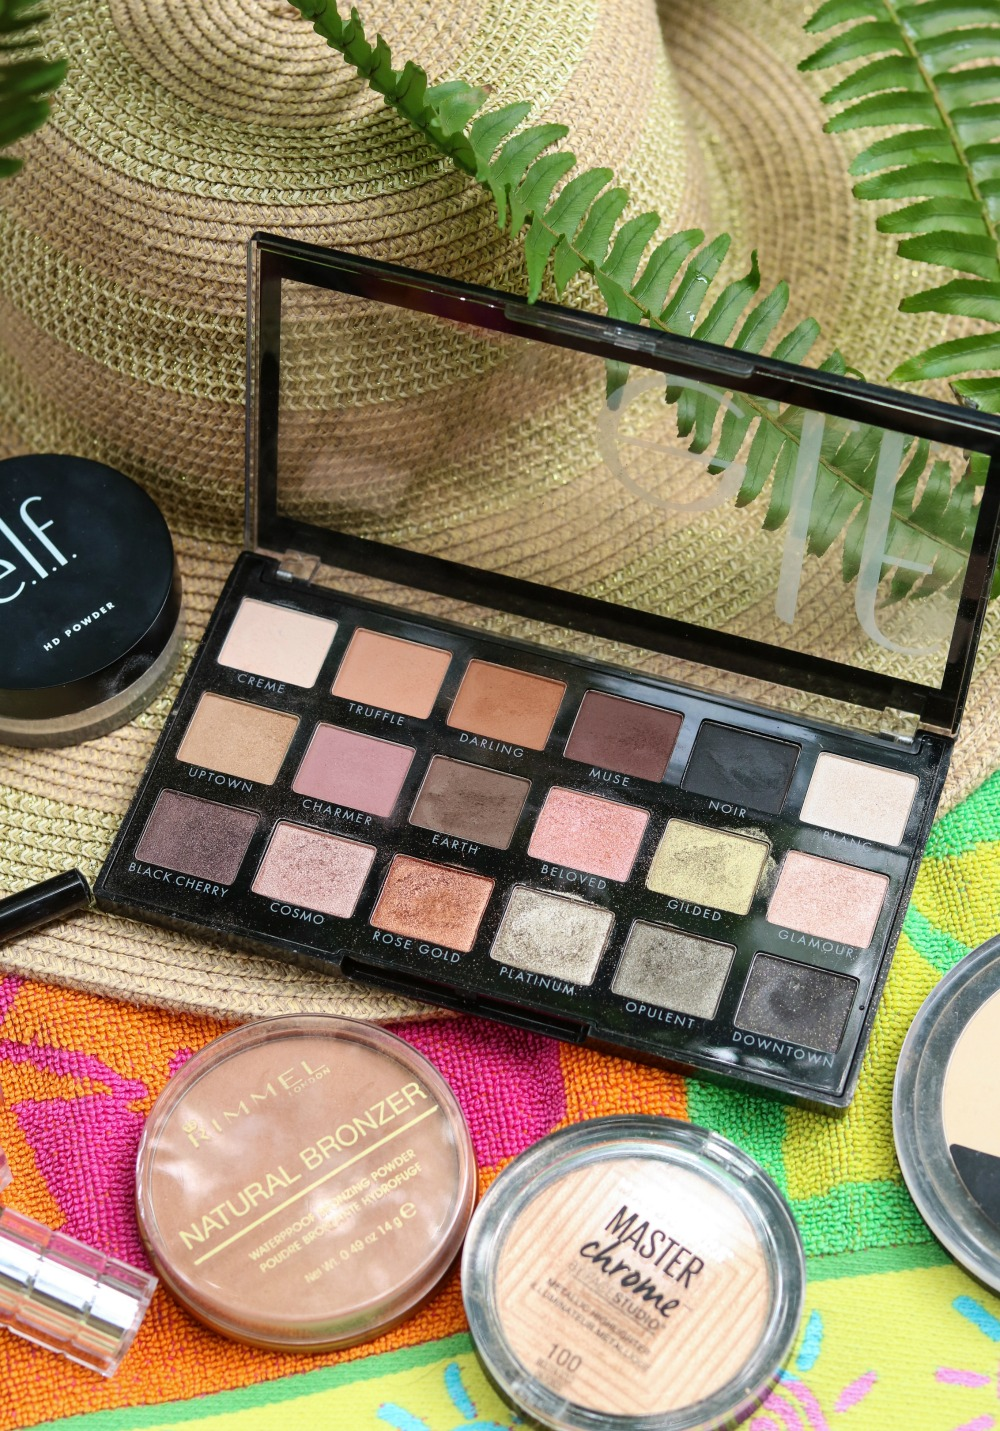 Summer Drugstore Makeup Tutorial I ELF New Classics Eyeshadow Palette #summermakeup #makeuptutorial #beautyblogger #makeup